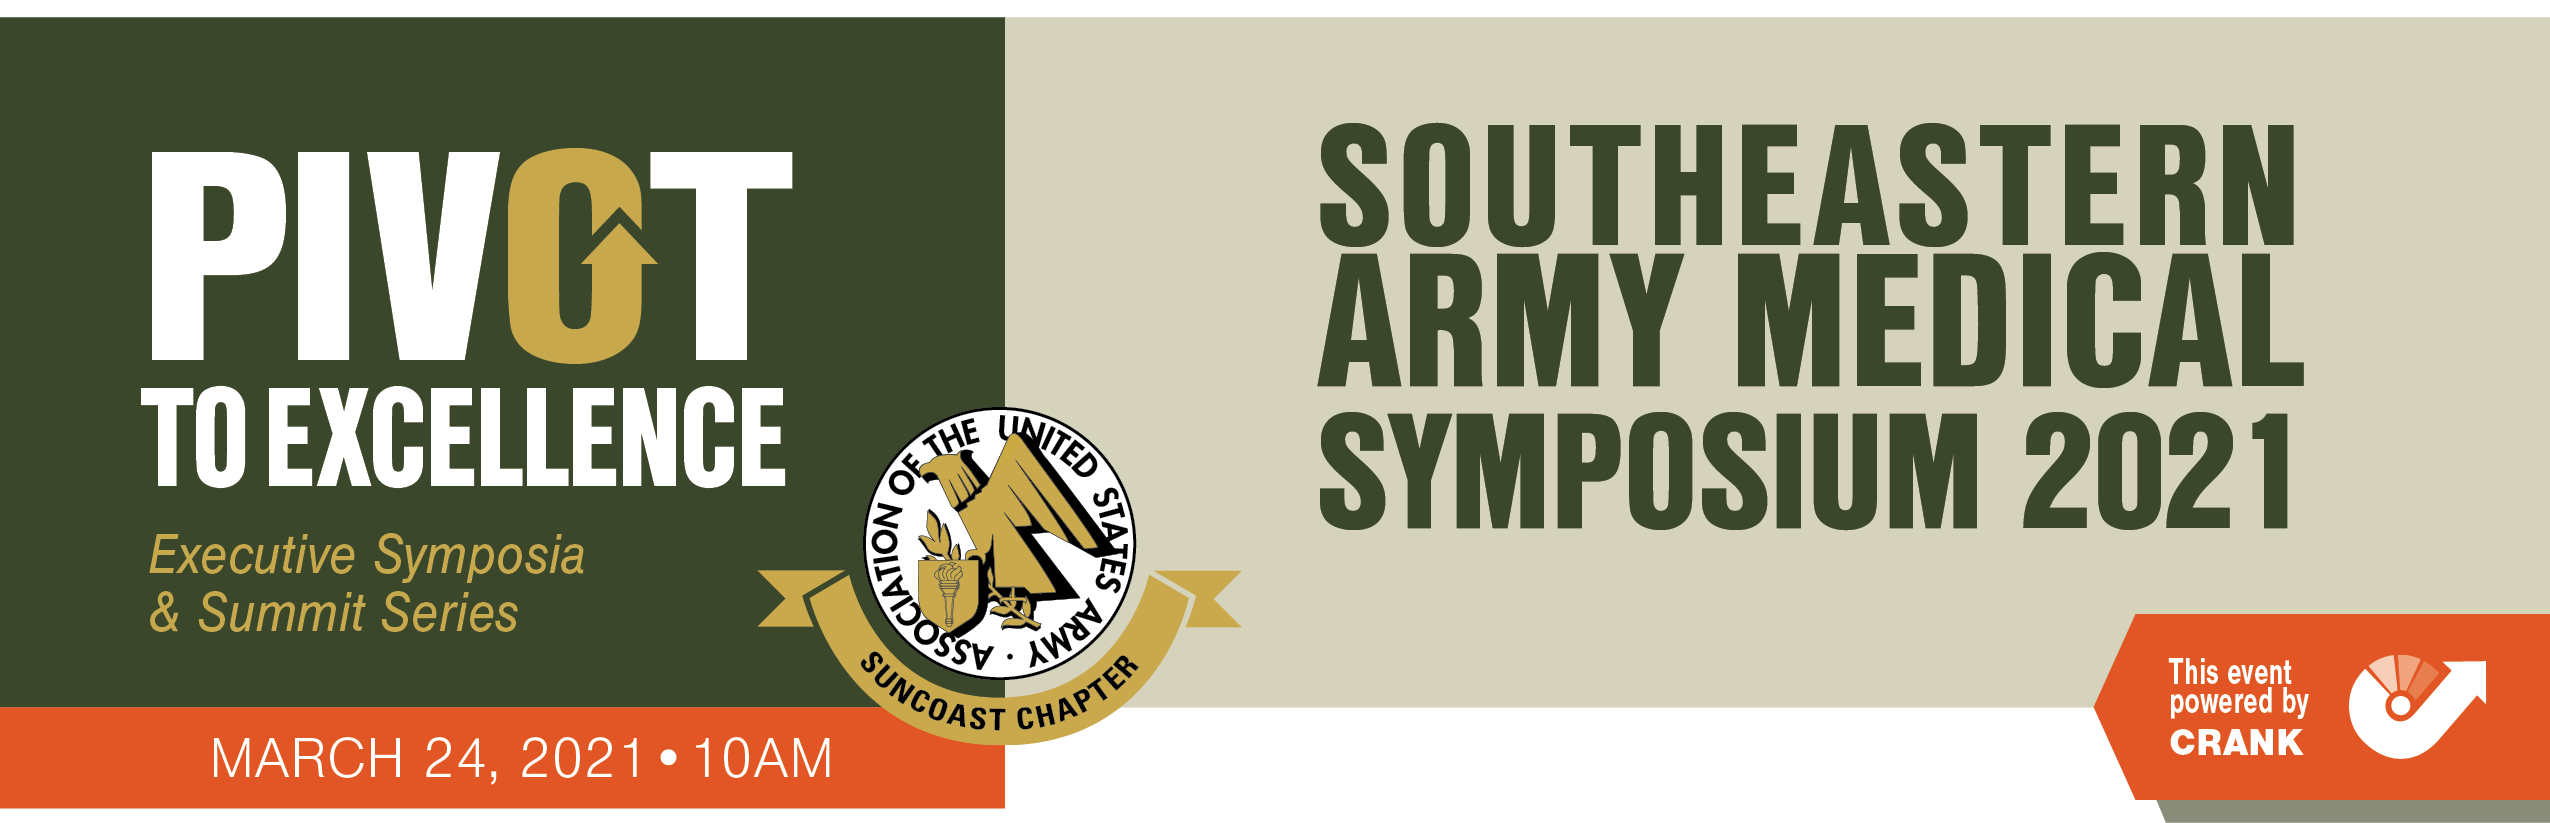 PIVOT TO EXCELLENCE SE Army Medical